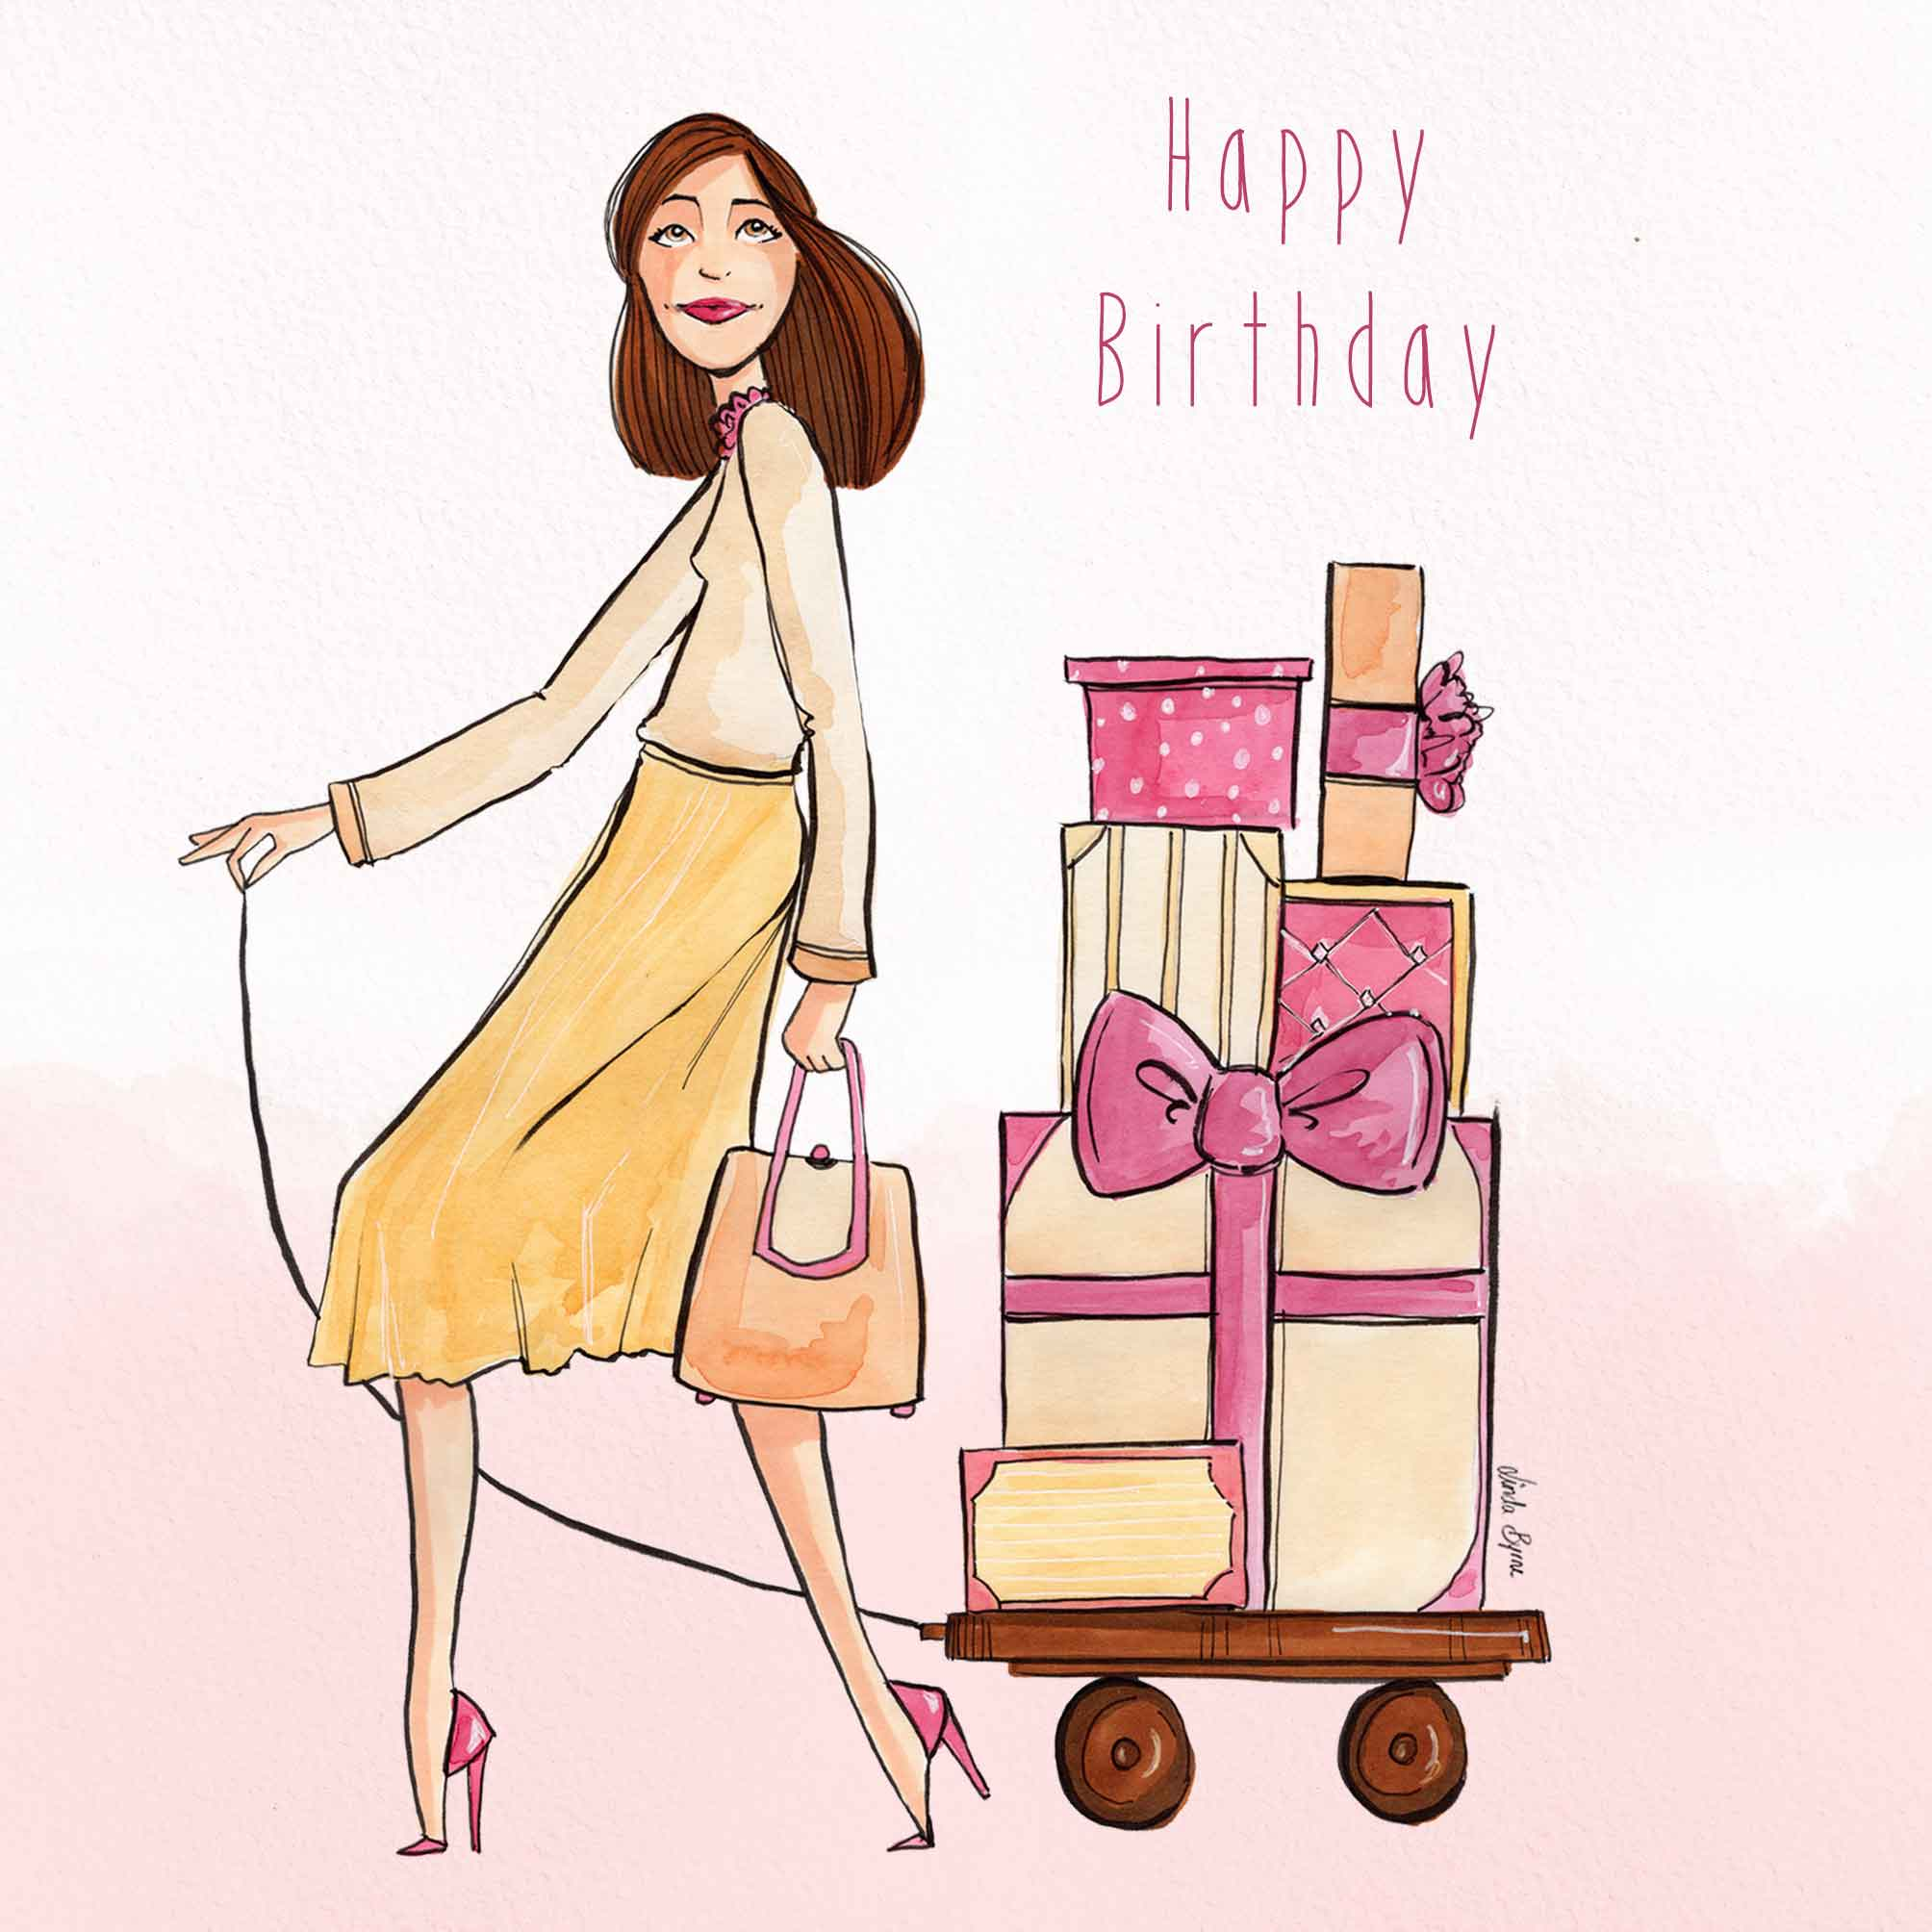 Happy Birthday Greeting Card Linda Byrne Women With Luggage Gifts